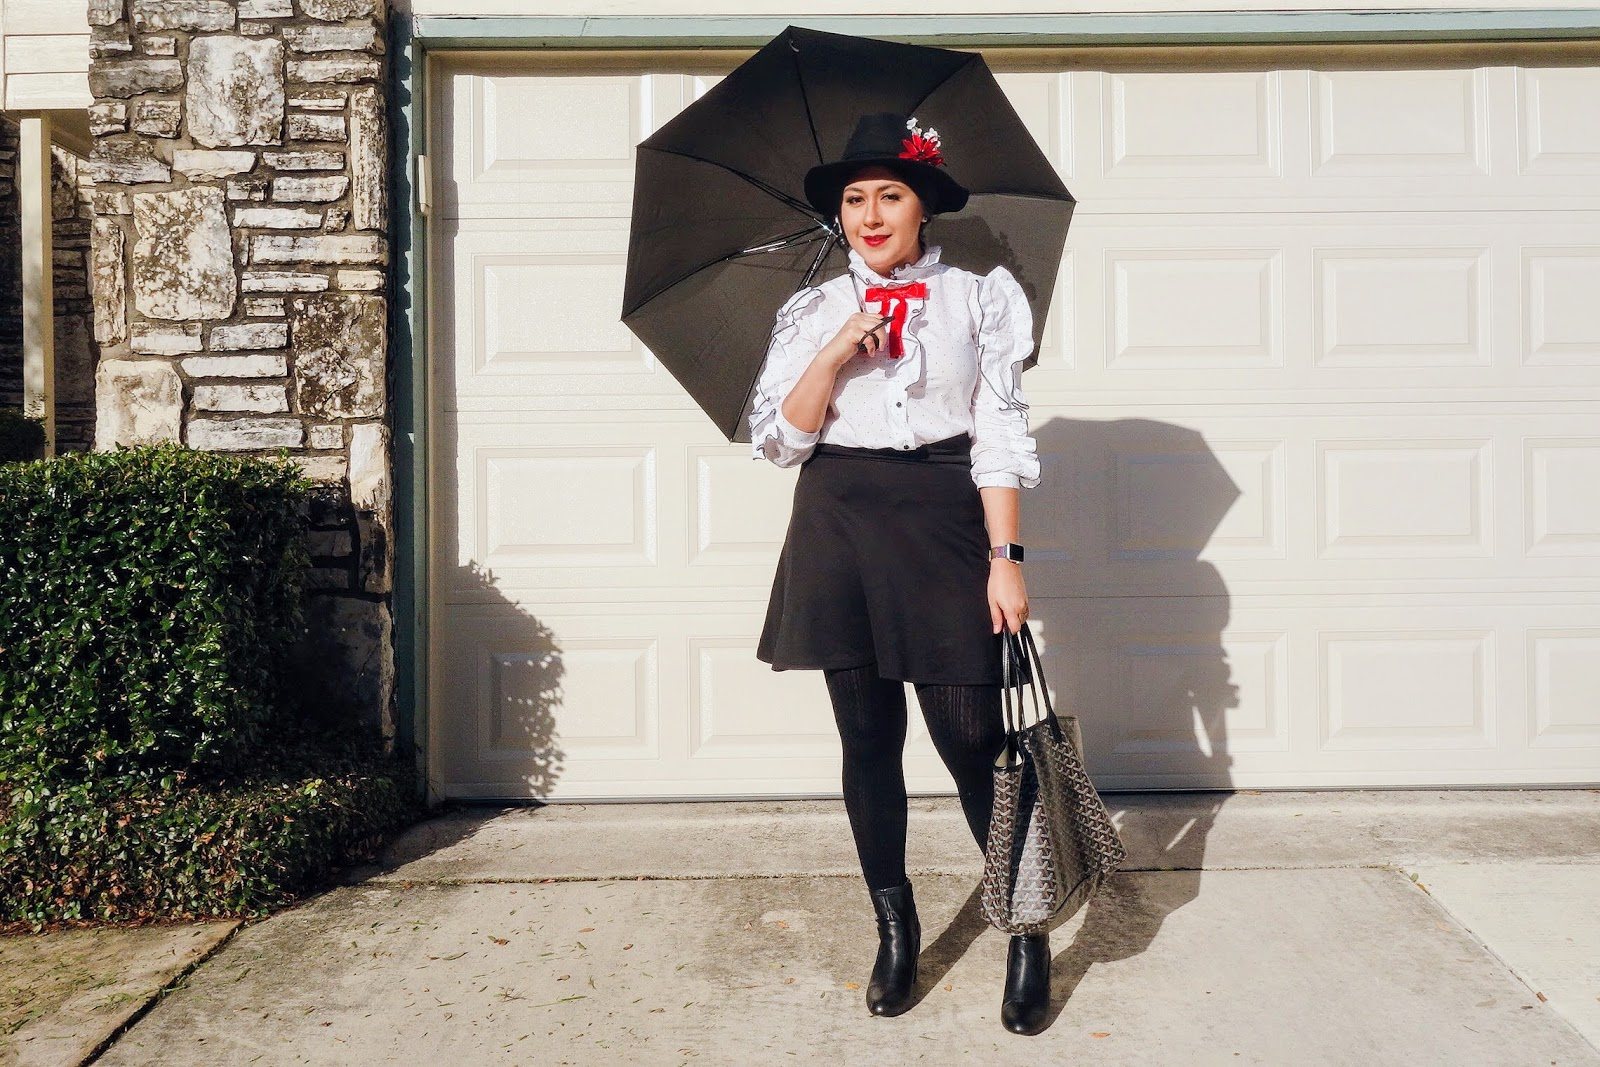 Mary Poppins Costume, Costume Ideas for Halloween, Mary Poppins, Easy Halloween Costume Idea